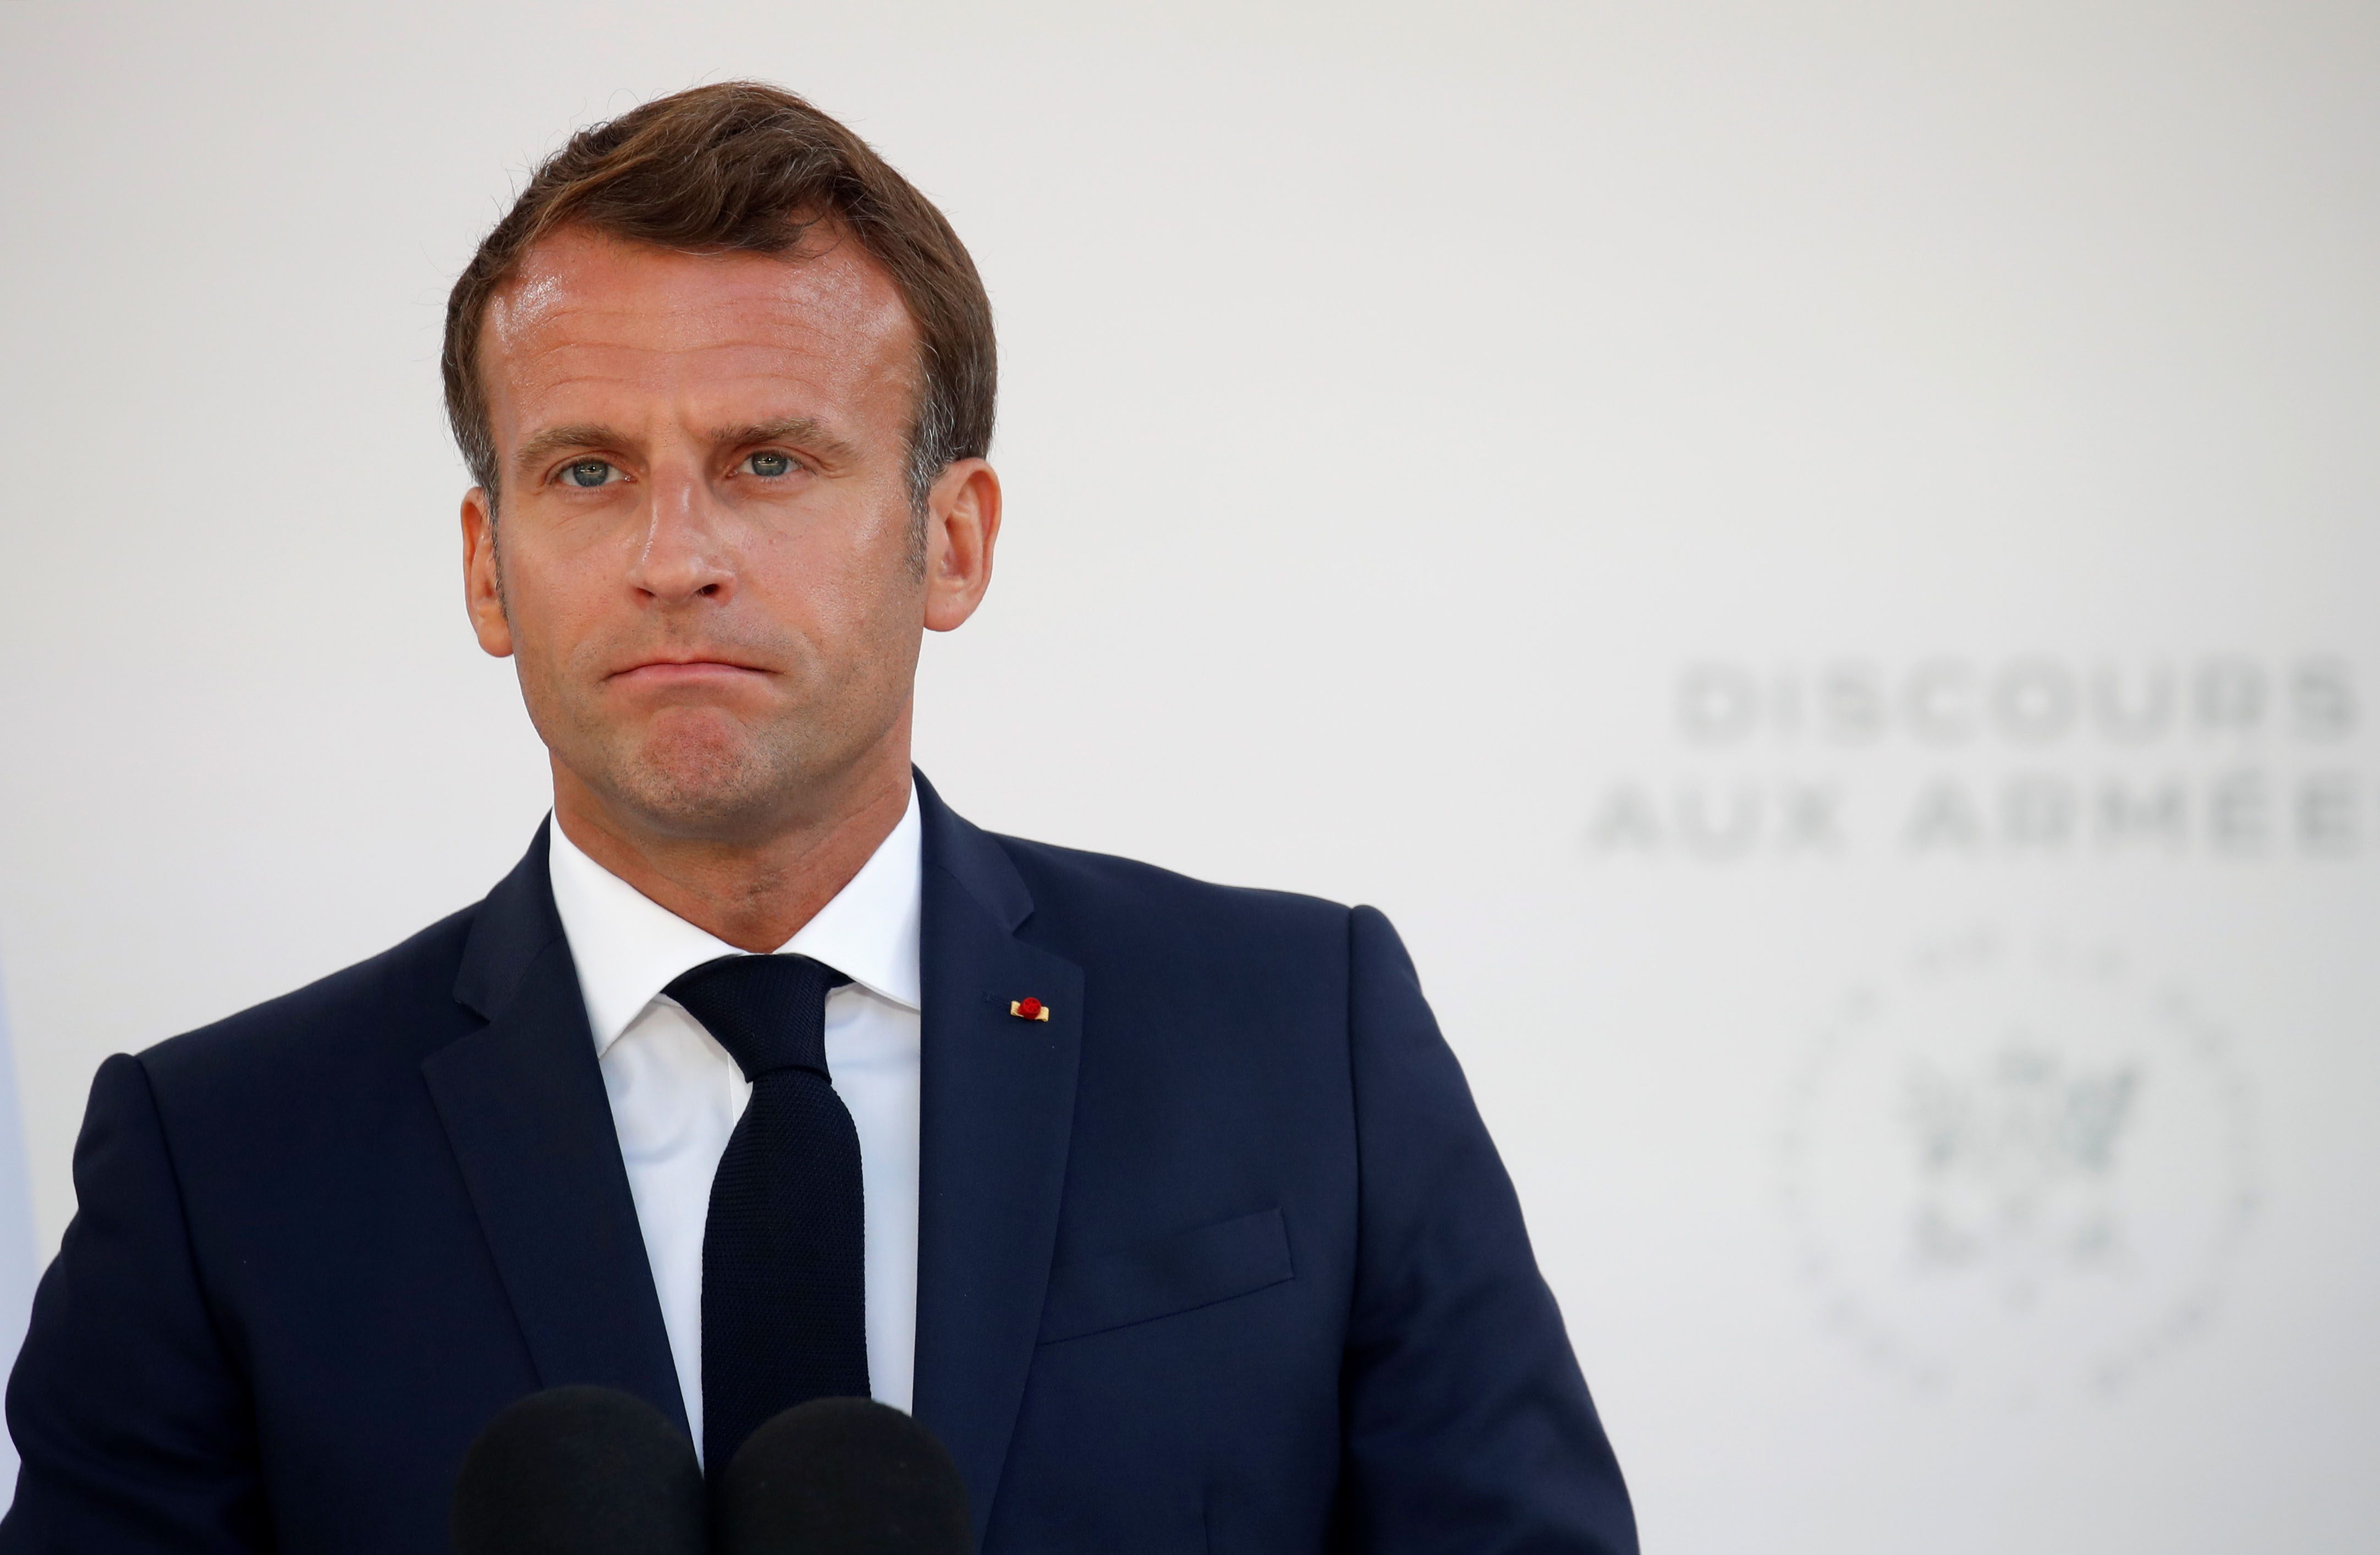 French President Emmanuel Macron delivers a speech in Paris on July 13.